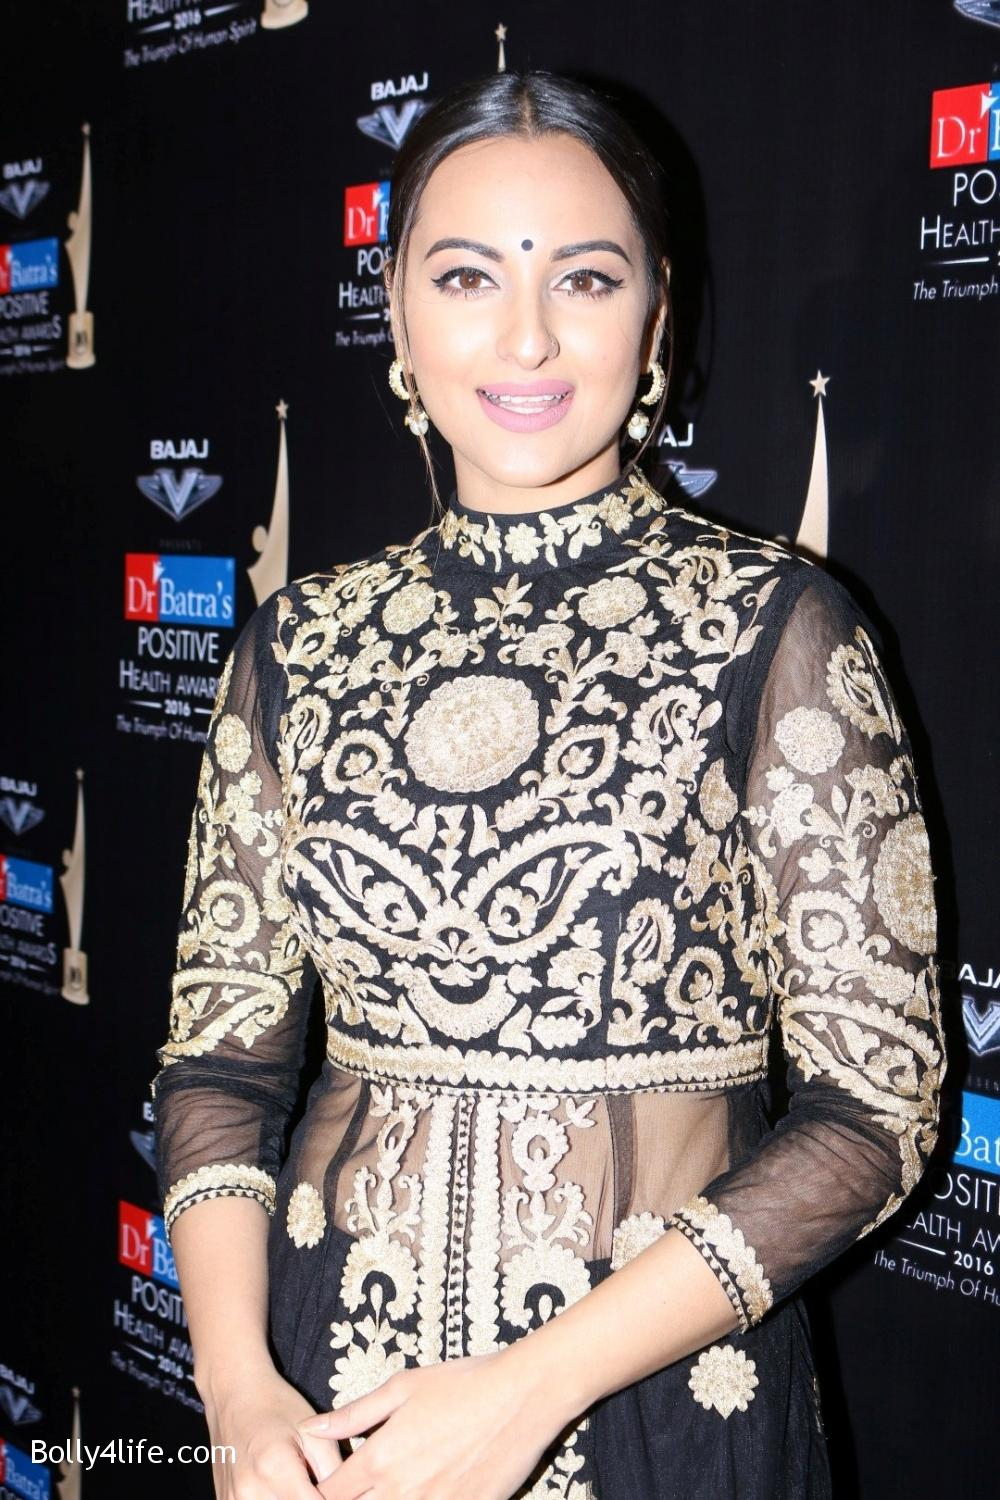 Sonakshi-Sinha-during-Dr-Batras-Positive-Health-Awards-2016-12.jpg